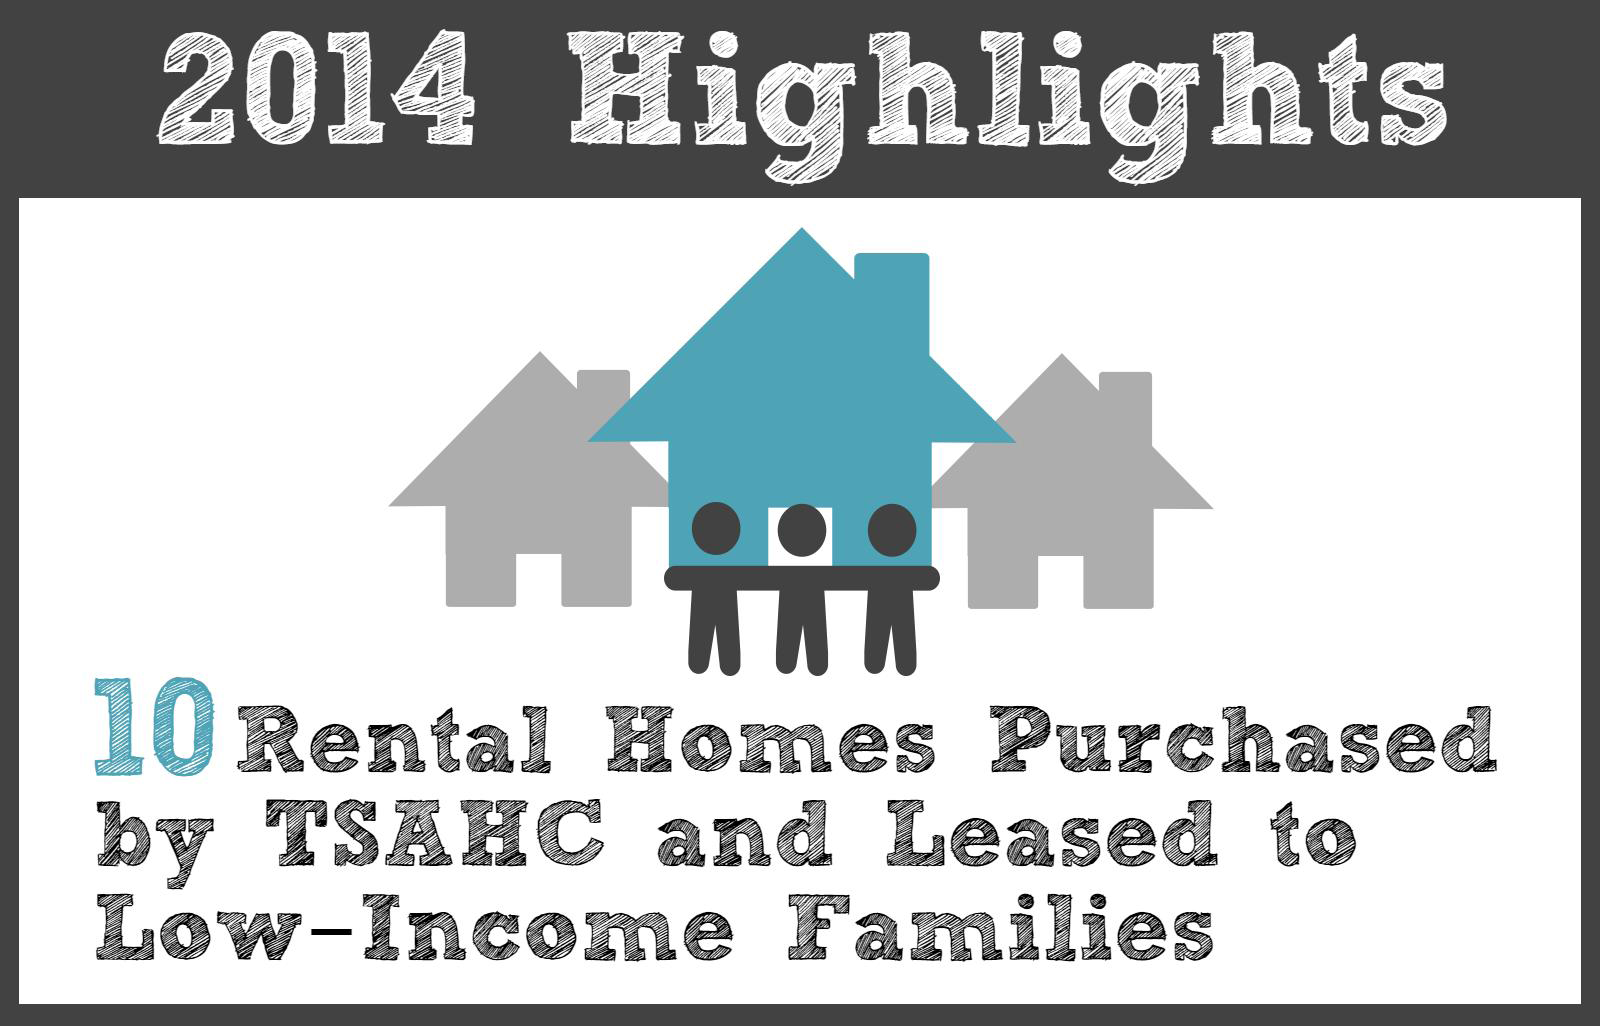 Single Family Rental Program I n response to the increasing cost of rental housing in central Texas, in 2013 TSAHC created the Single Family Rental Program, which provides eligible low-income